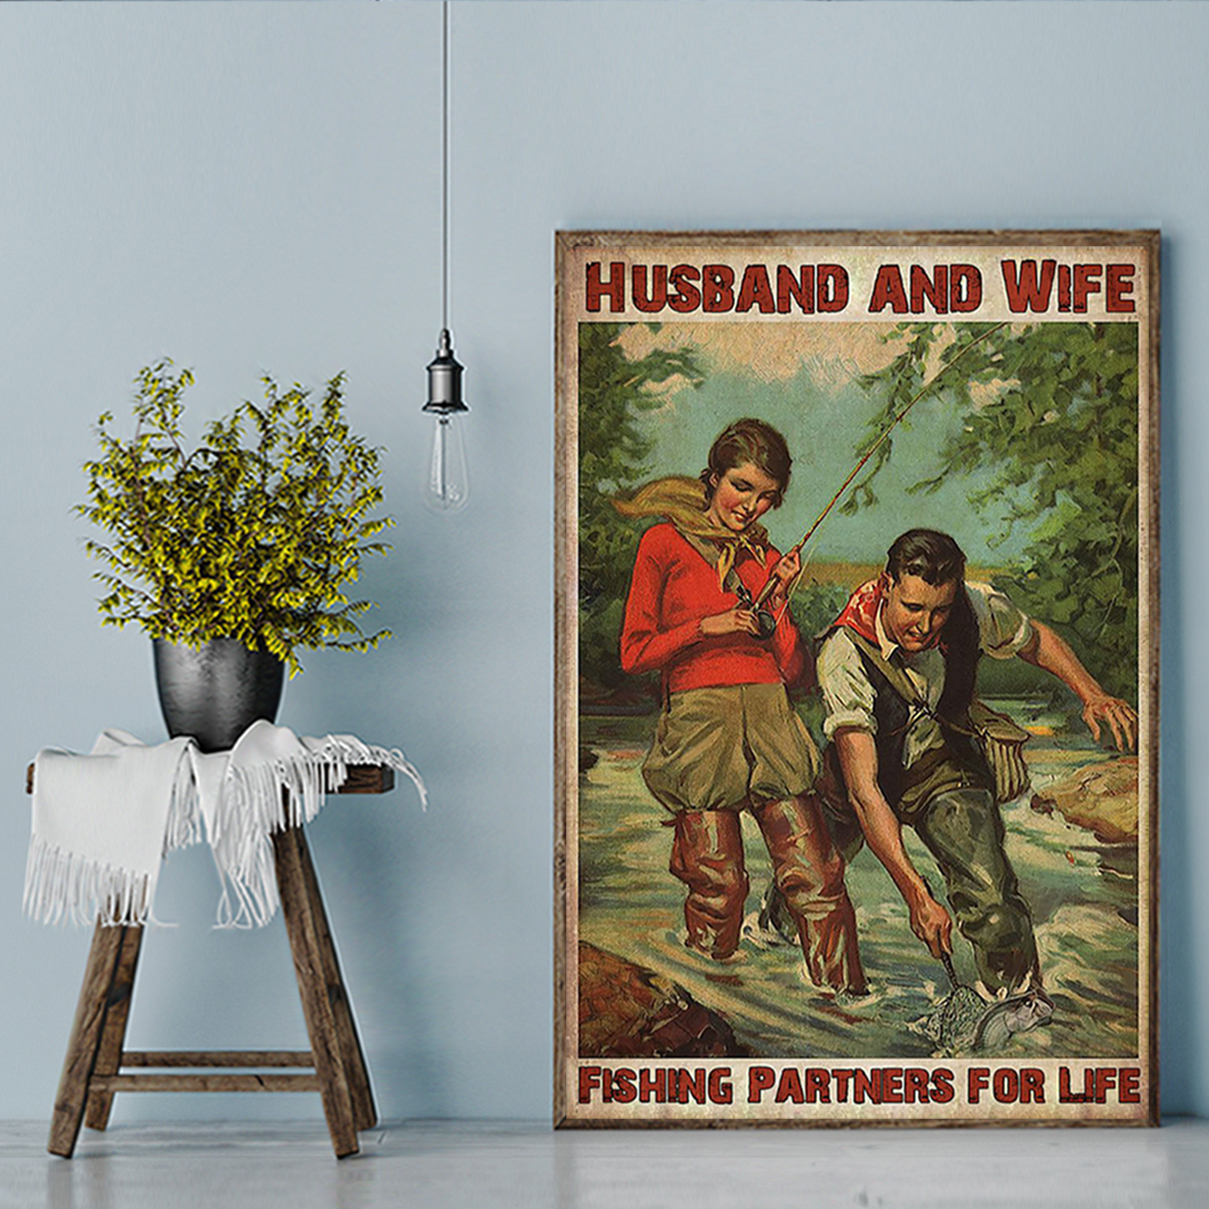 Husband and wife fishing partners for life poster A1